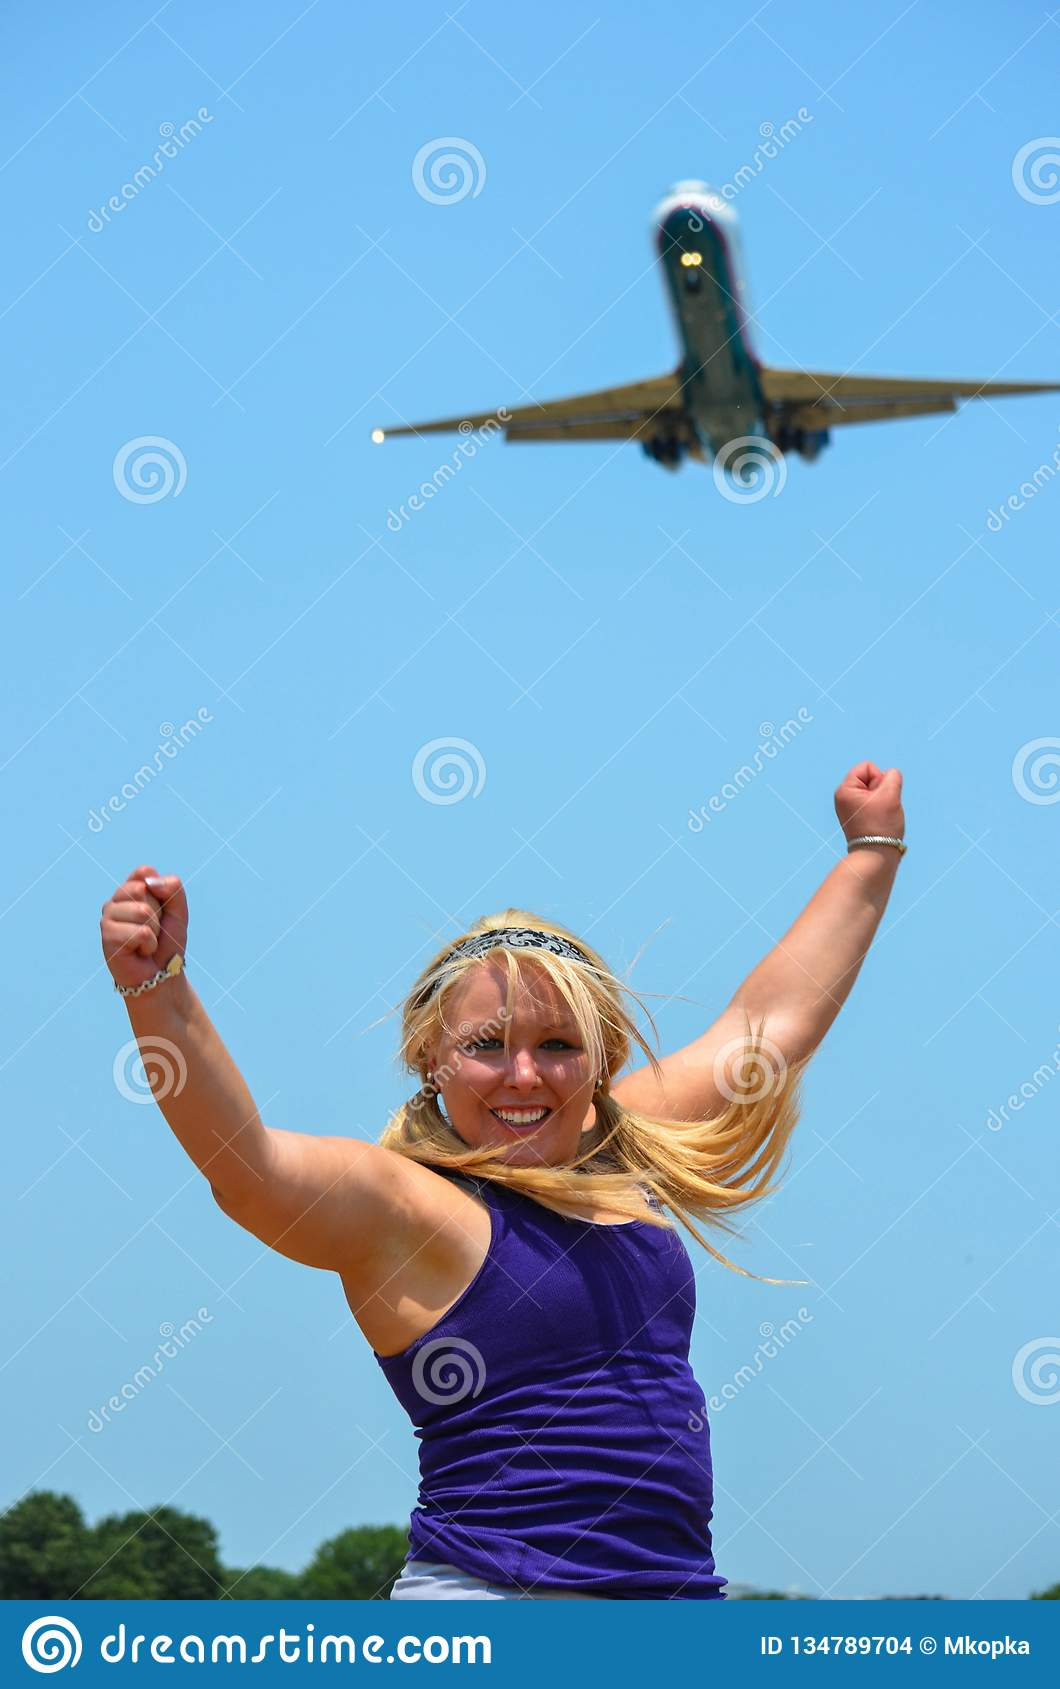 Young adult woman poses with her arms up with a large passenger jet airplane defocused in background. Concept for travel, deals